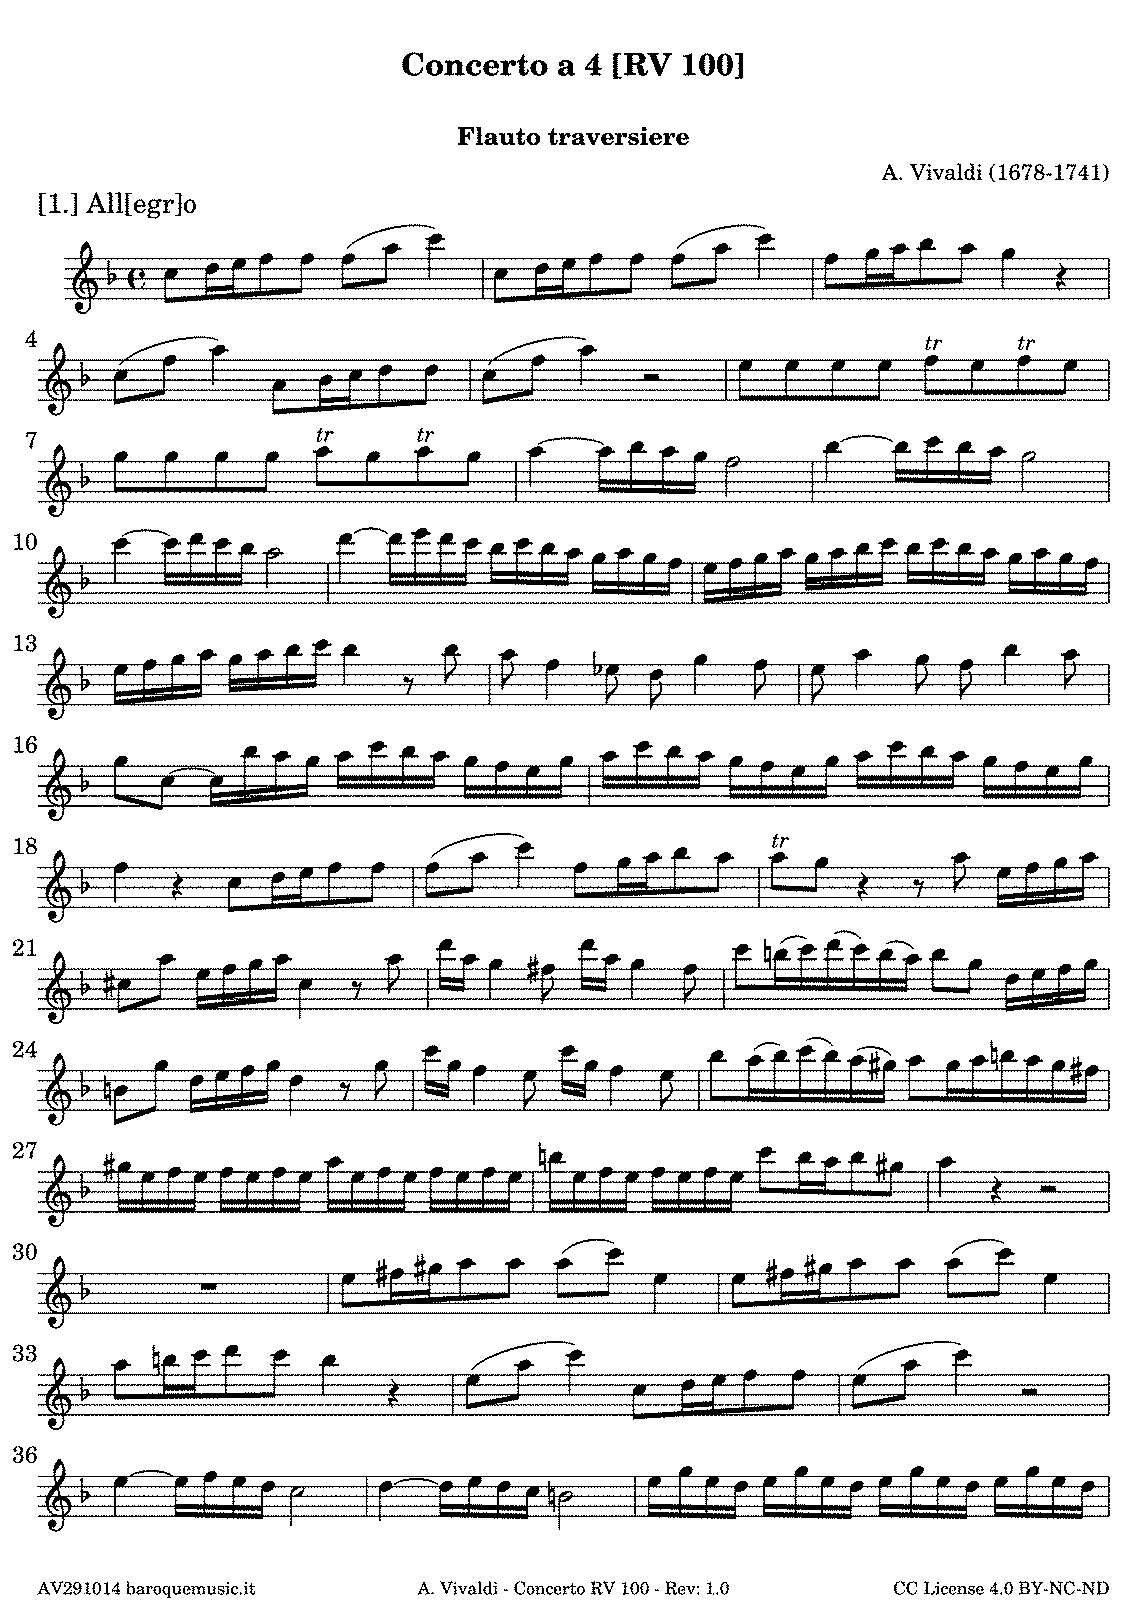 PMLP545534--baroquemusic.it- Concerto RV 100 -flauto-.pdf